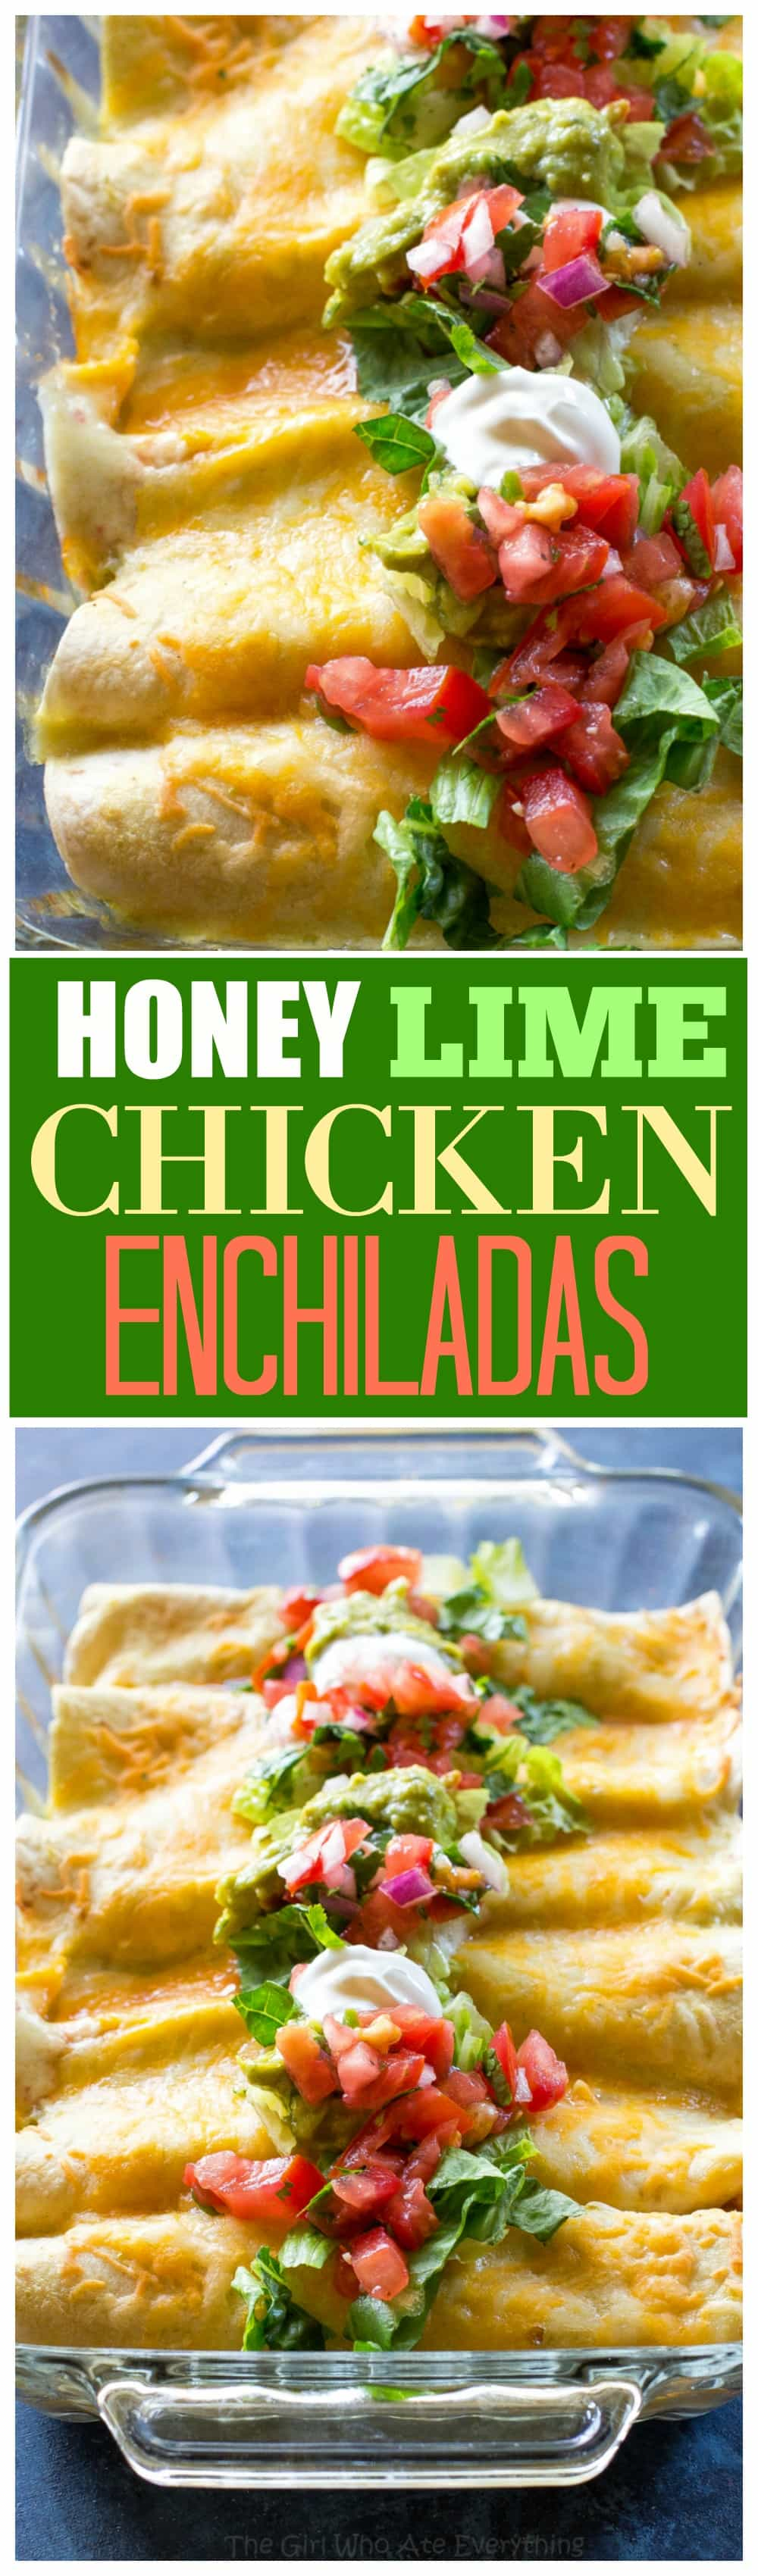 Honey Lime Chicken Enchiladas - my go-to easy Mexican dinner for company that is freezer friendly. #mexican #dinner #recipe #honey #lime #enchiladas #freezerfriendly